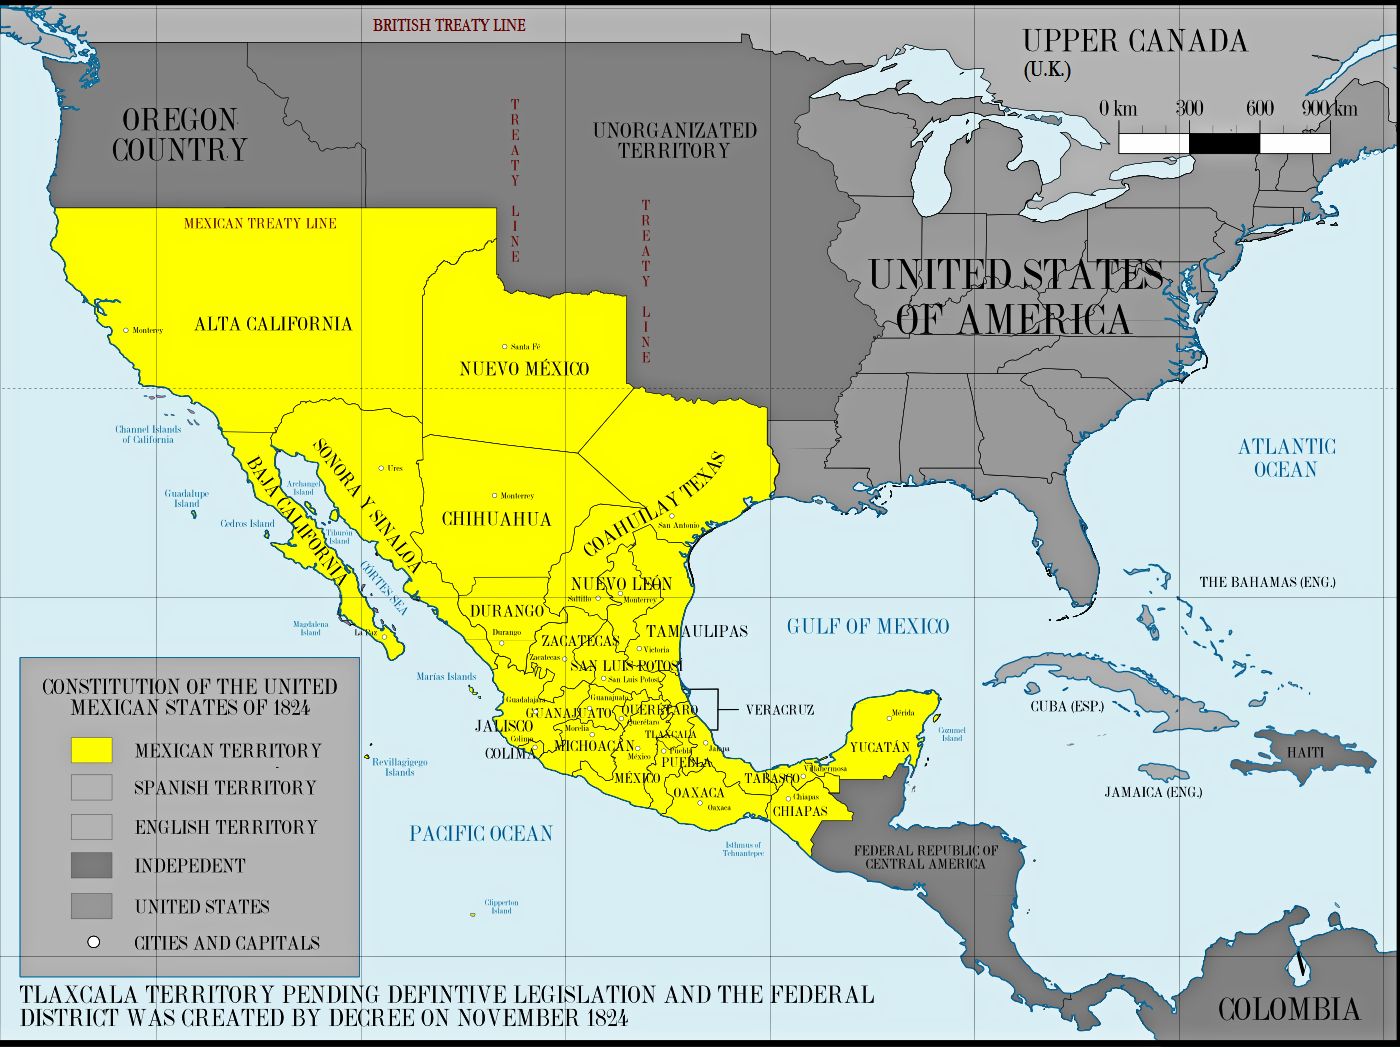 states which had won their freedom from spain and the united states of america as represented in this map of mexico based upon its 1824 constitution